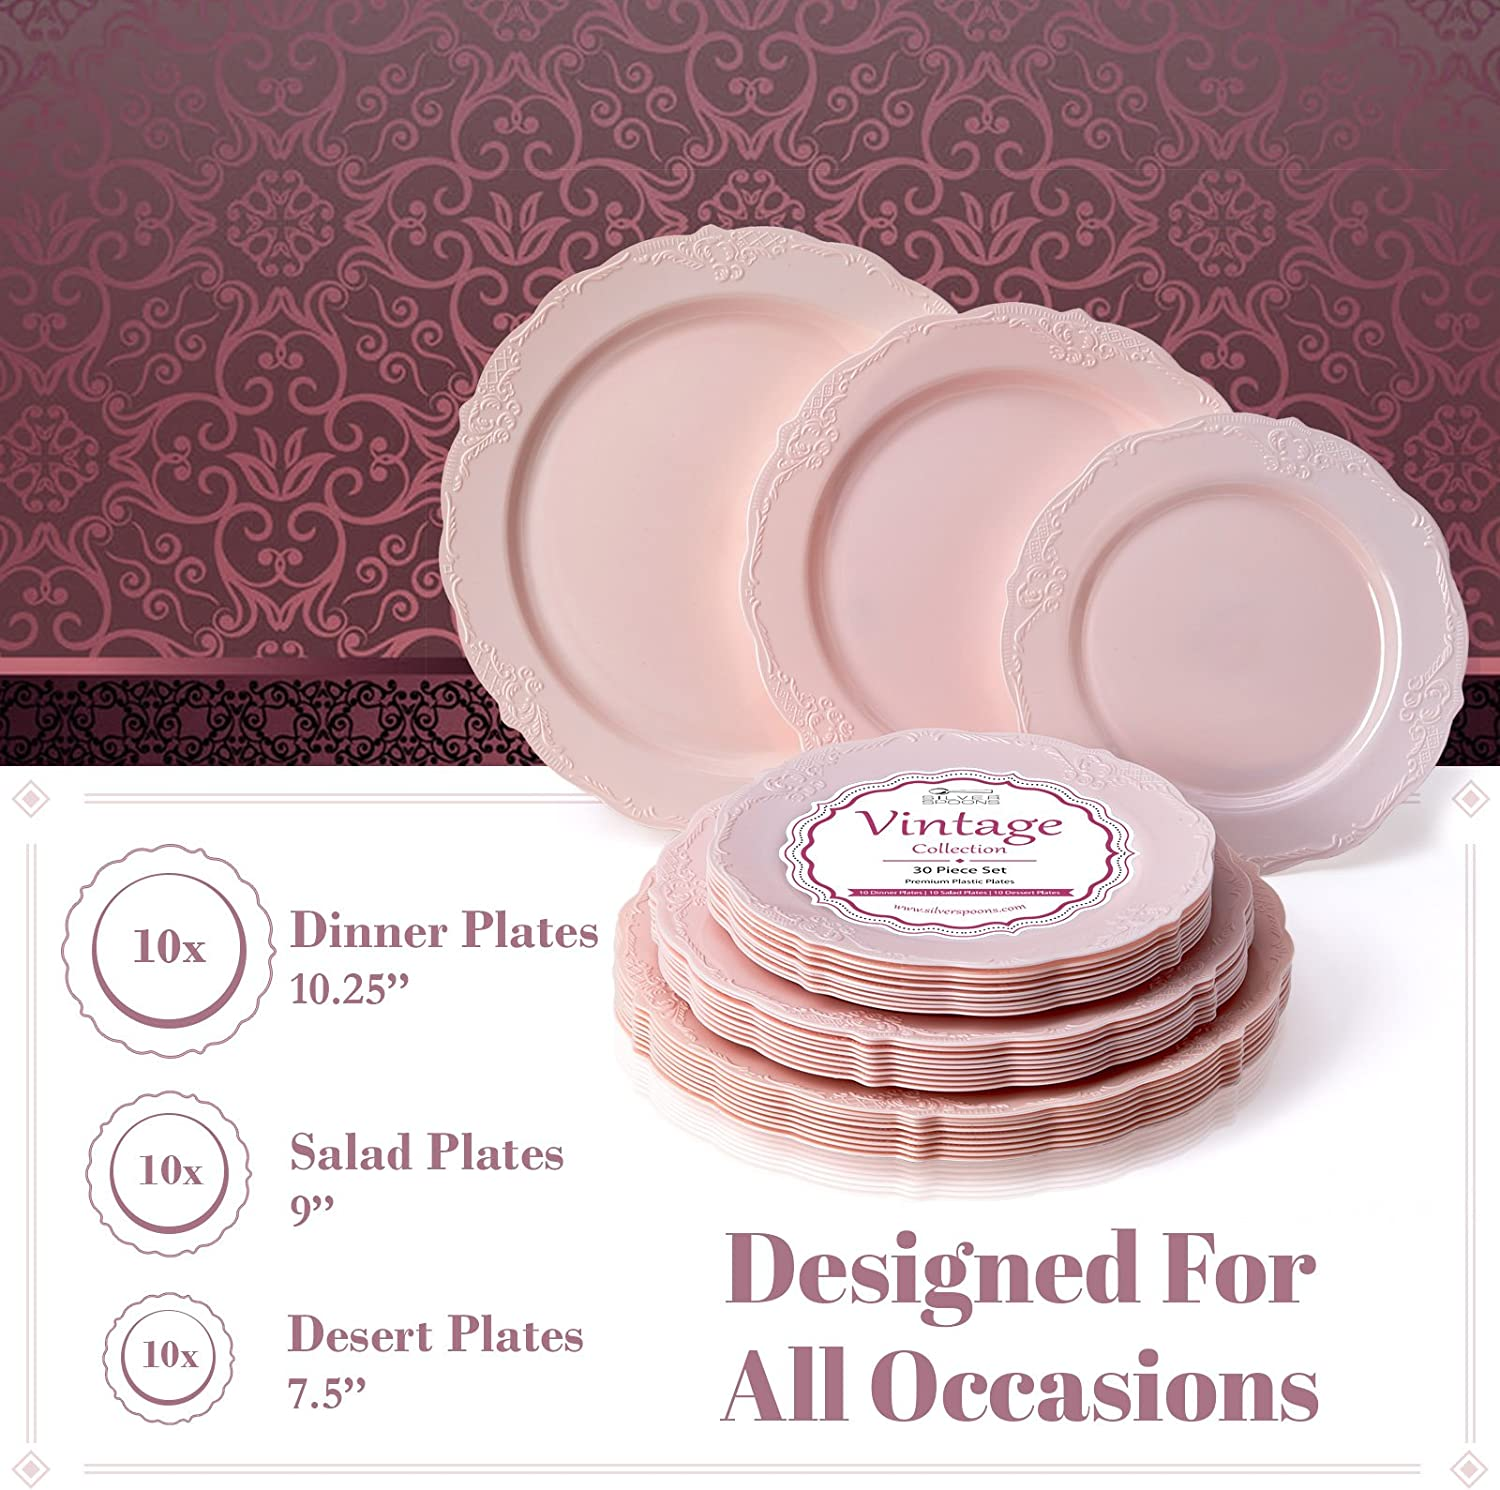 10 Dinner Plates 10 Salad Plates 10 Dessert Plates Heavy Duty Plastic Dishes Upscale Wedding Dining Elegant Fine China Look PARTY DISPOSABLE 30 PC DINNERWARE SET Vintage Collection/–White